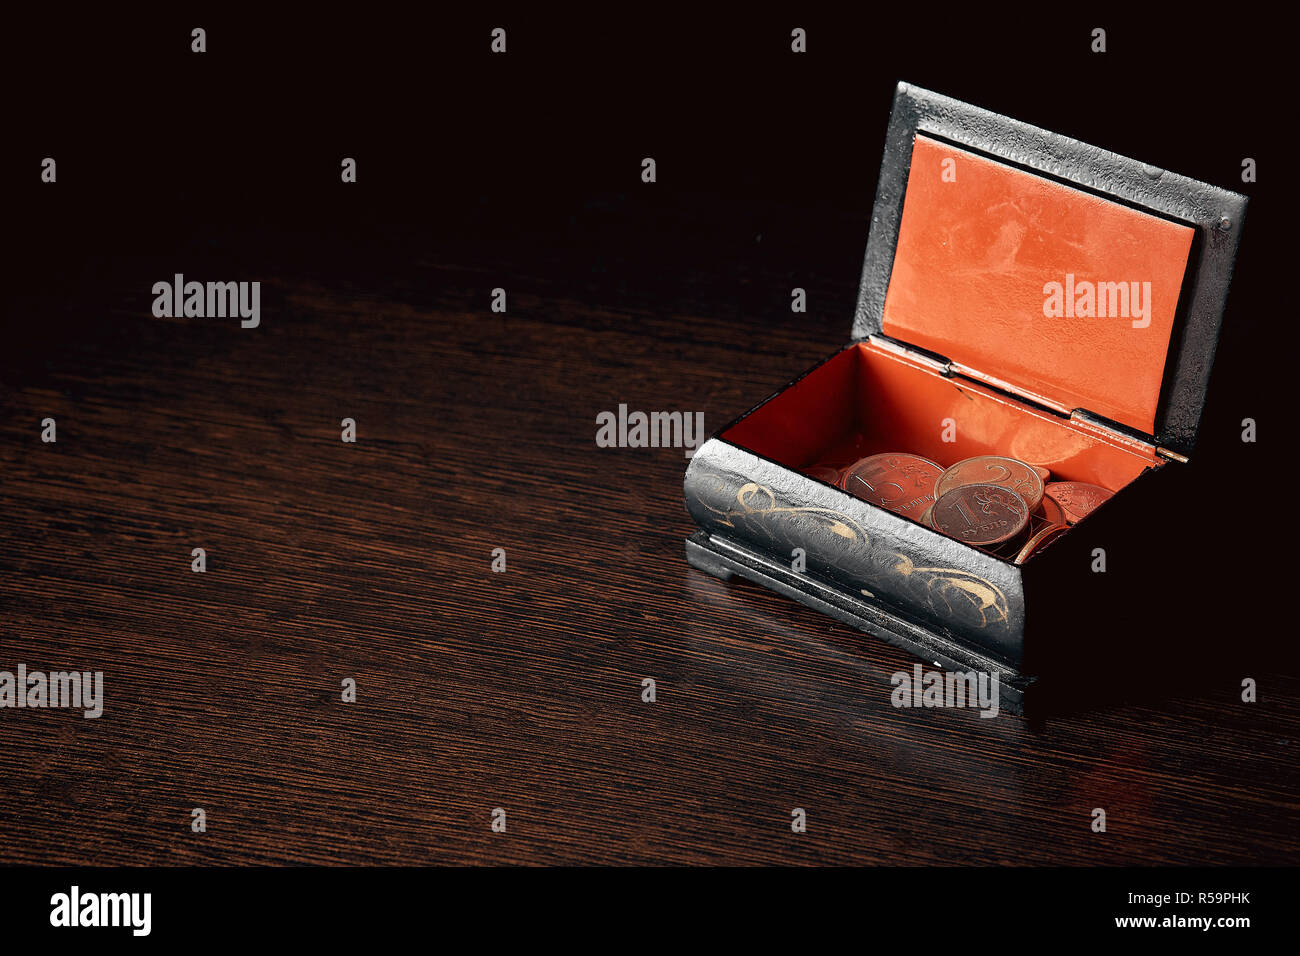 saving money, business concept. Coins on the table near the box - Stock Image